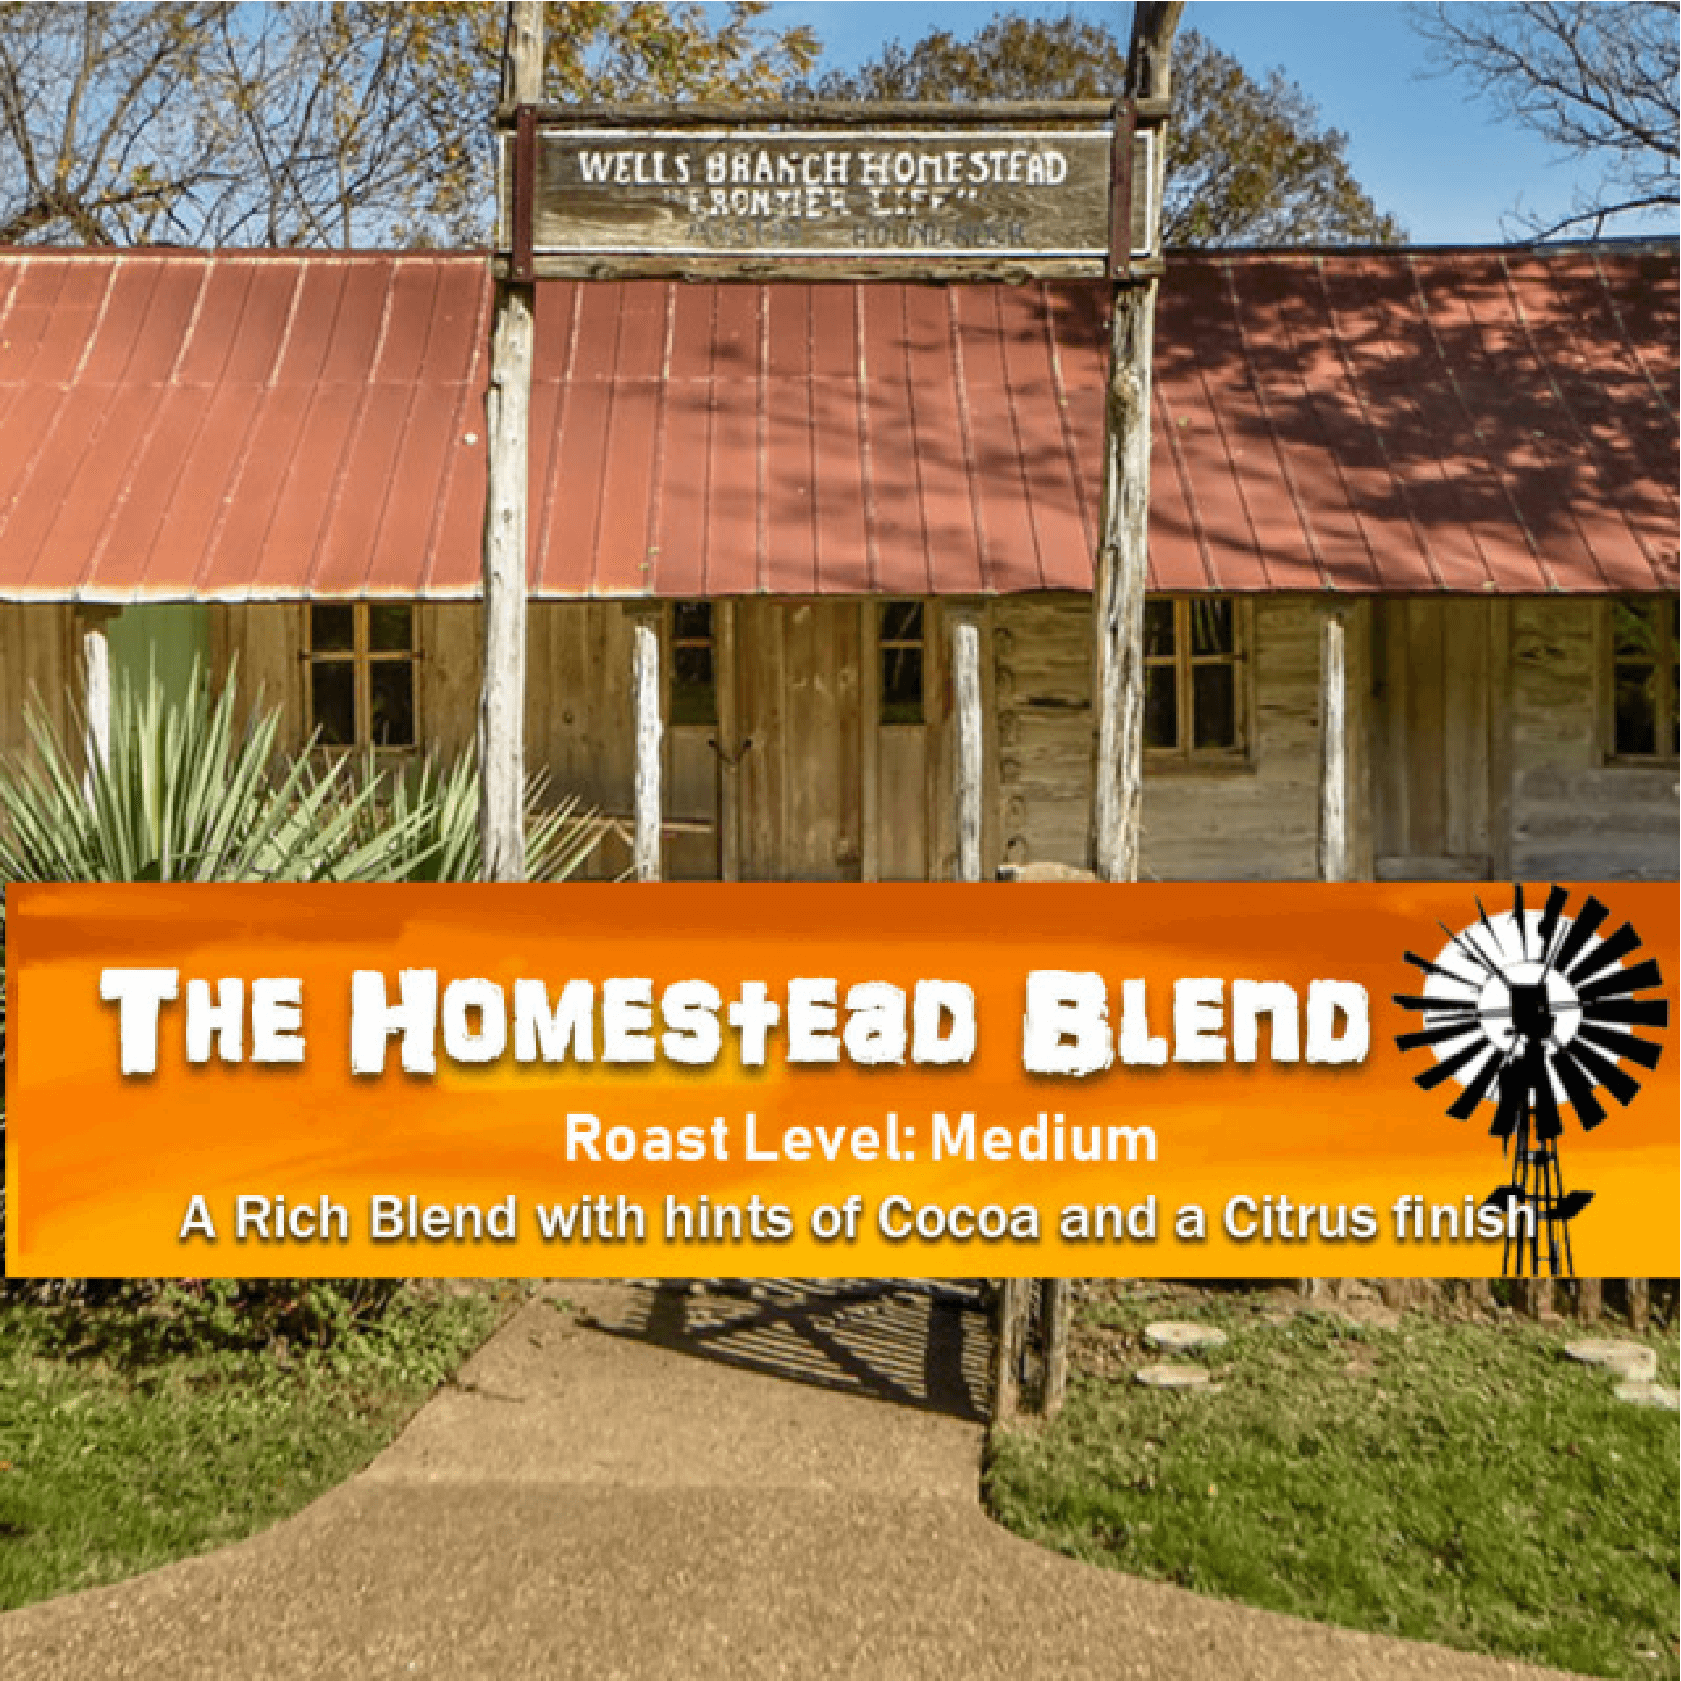 The Homestead Blend from Malone Specialty Coffee